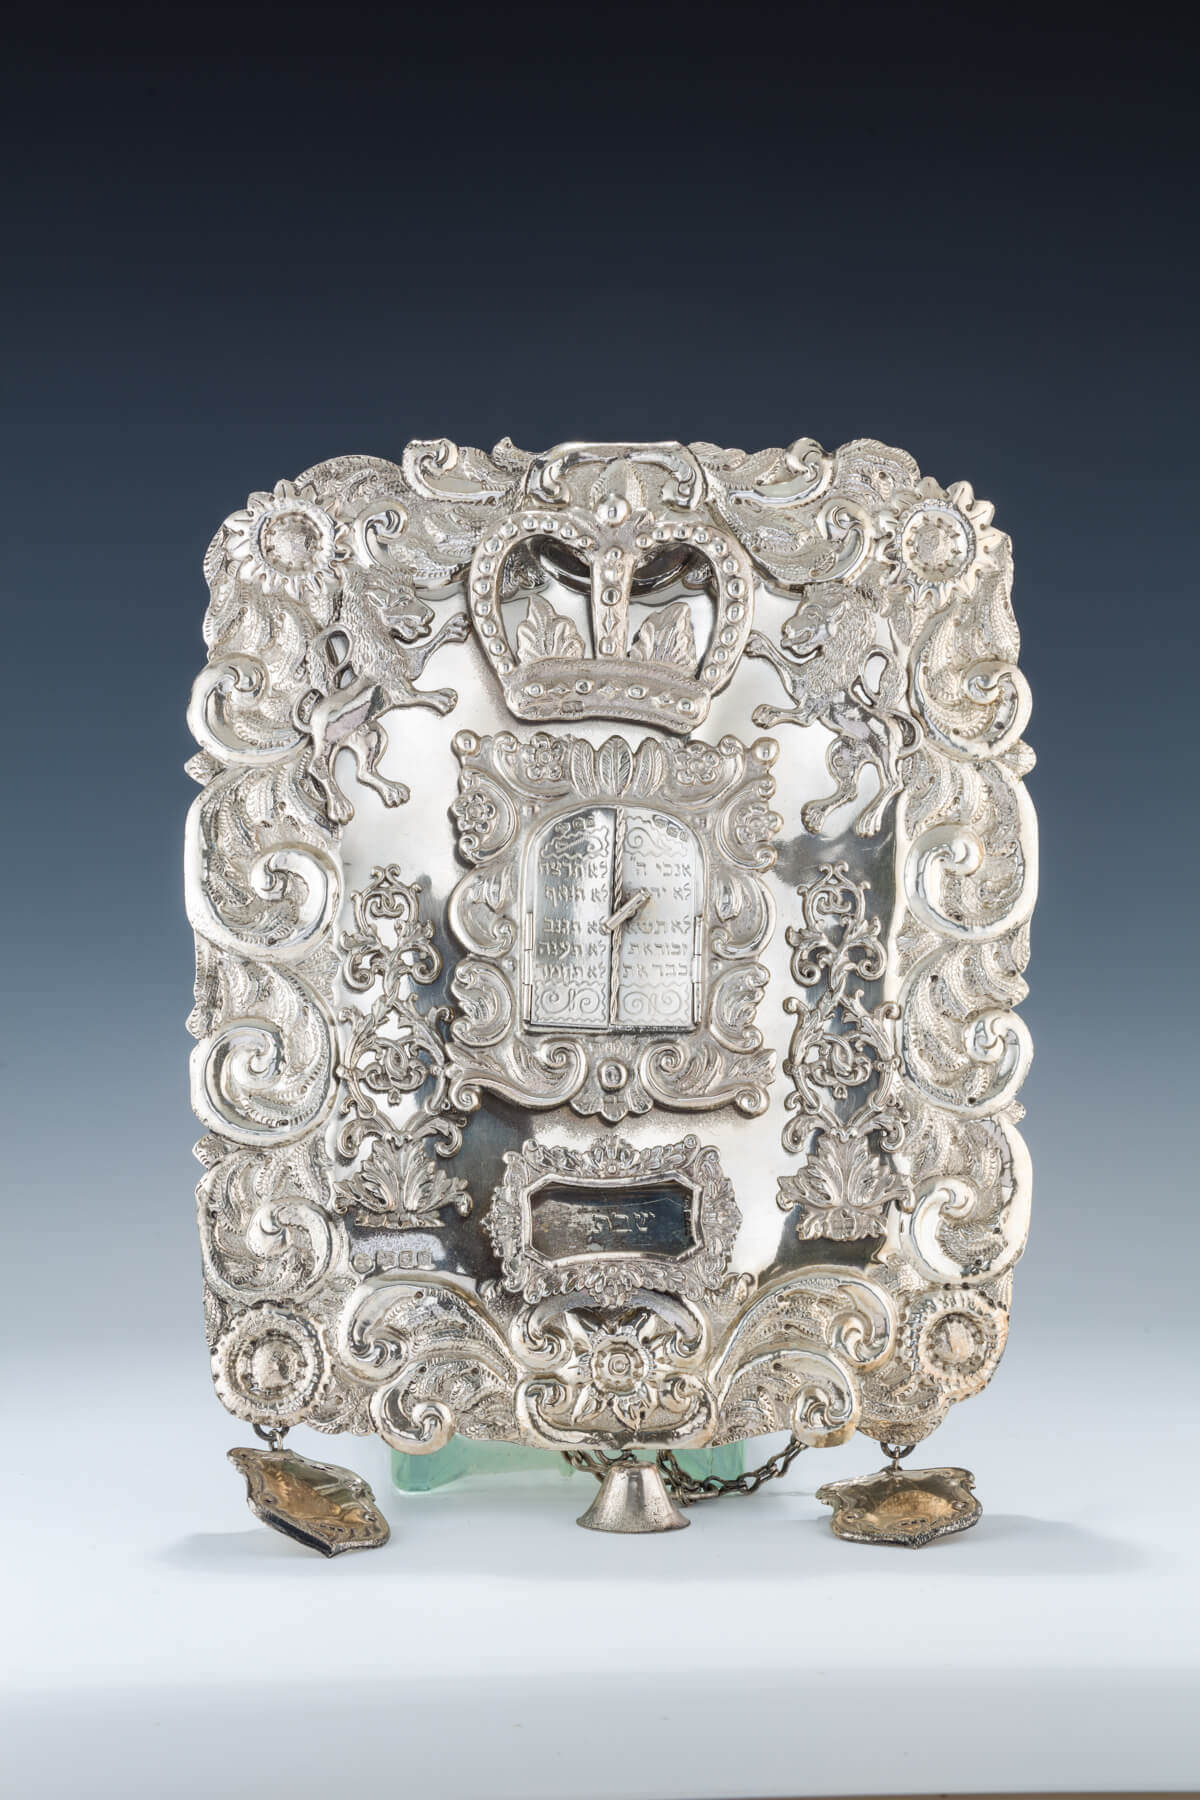 012. A LARGE AND HEAVY SILVER TORAH SHIELD BY JACOB ROSENZWEIG